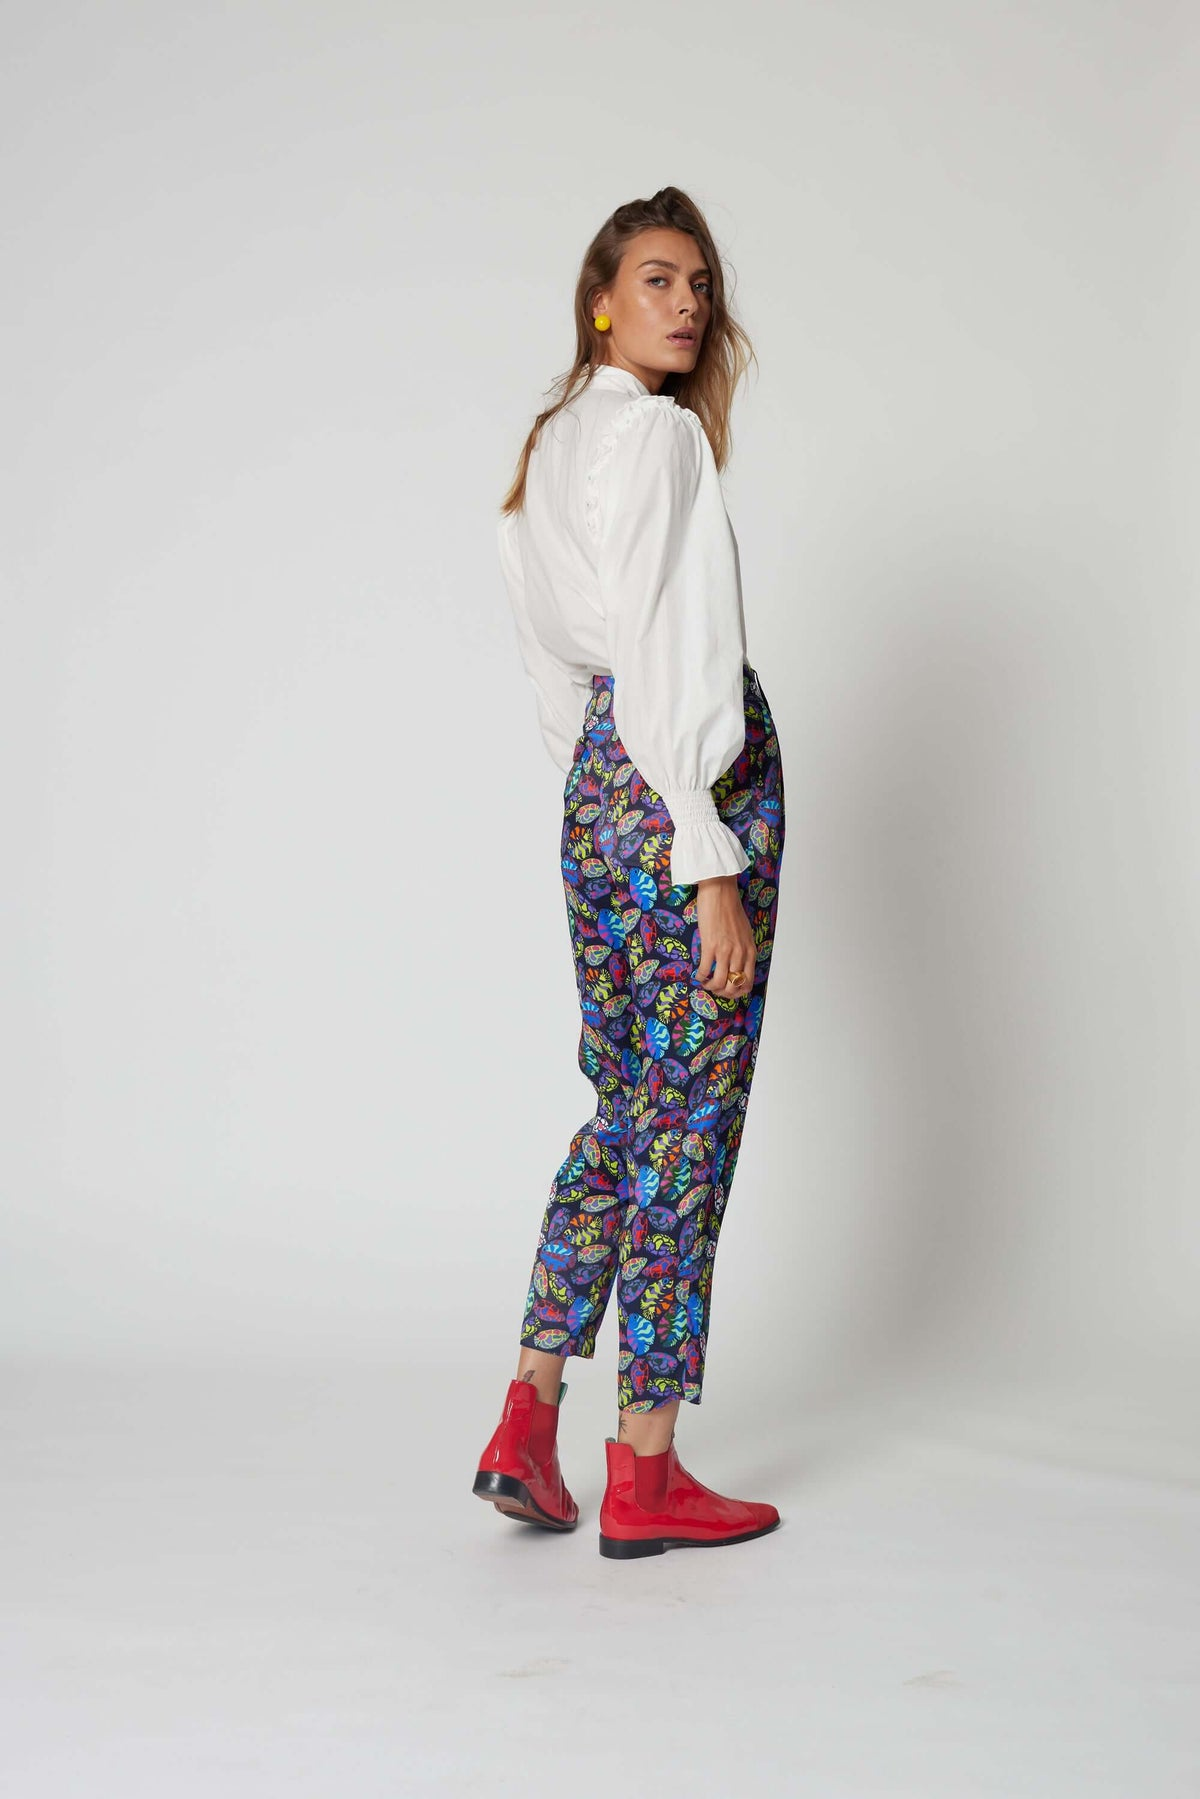 Gabriel pants in Gourami print